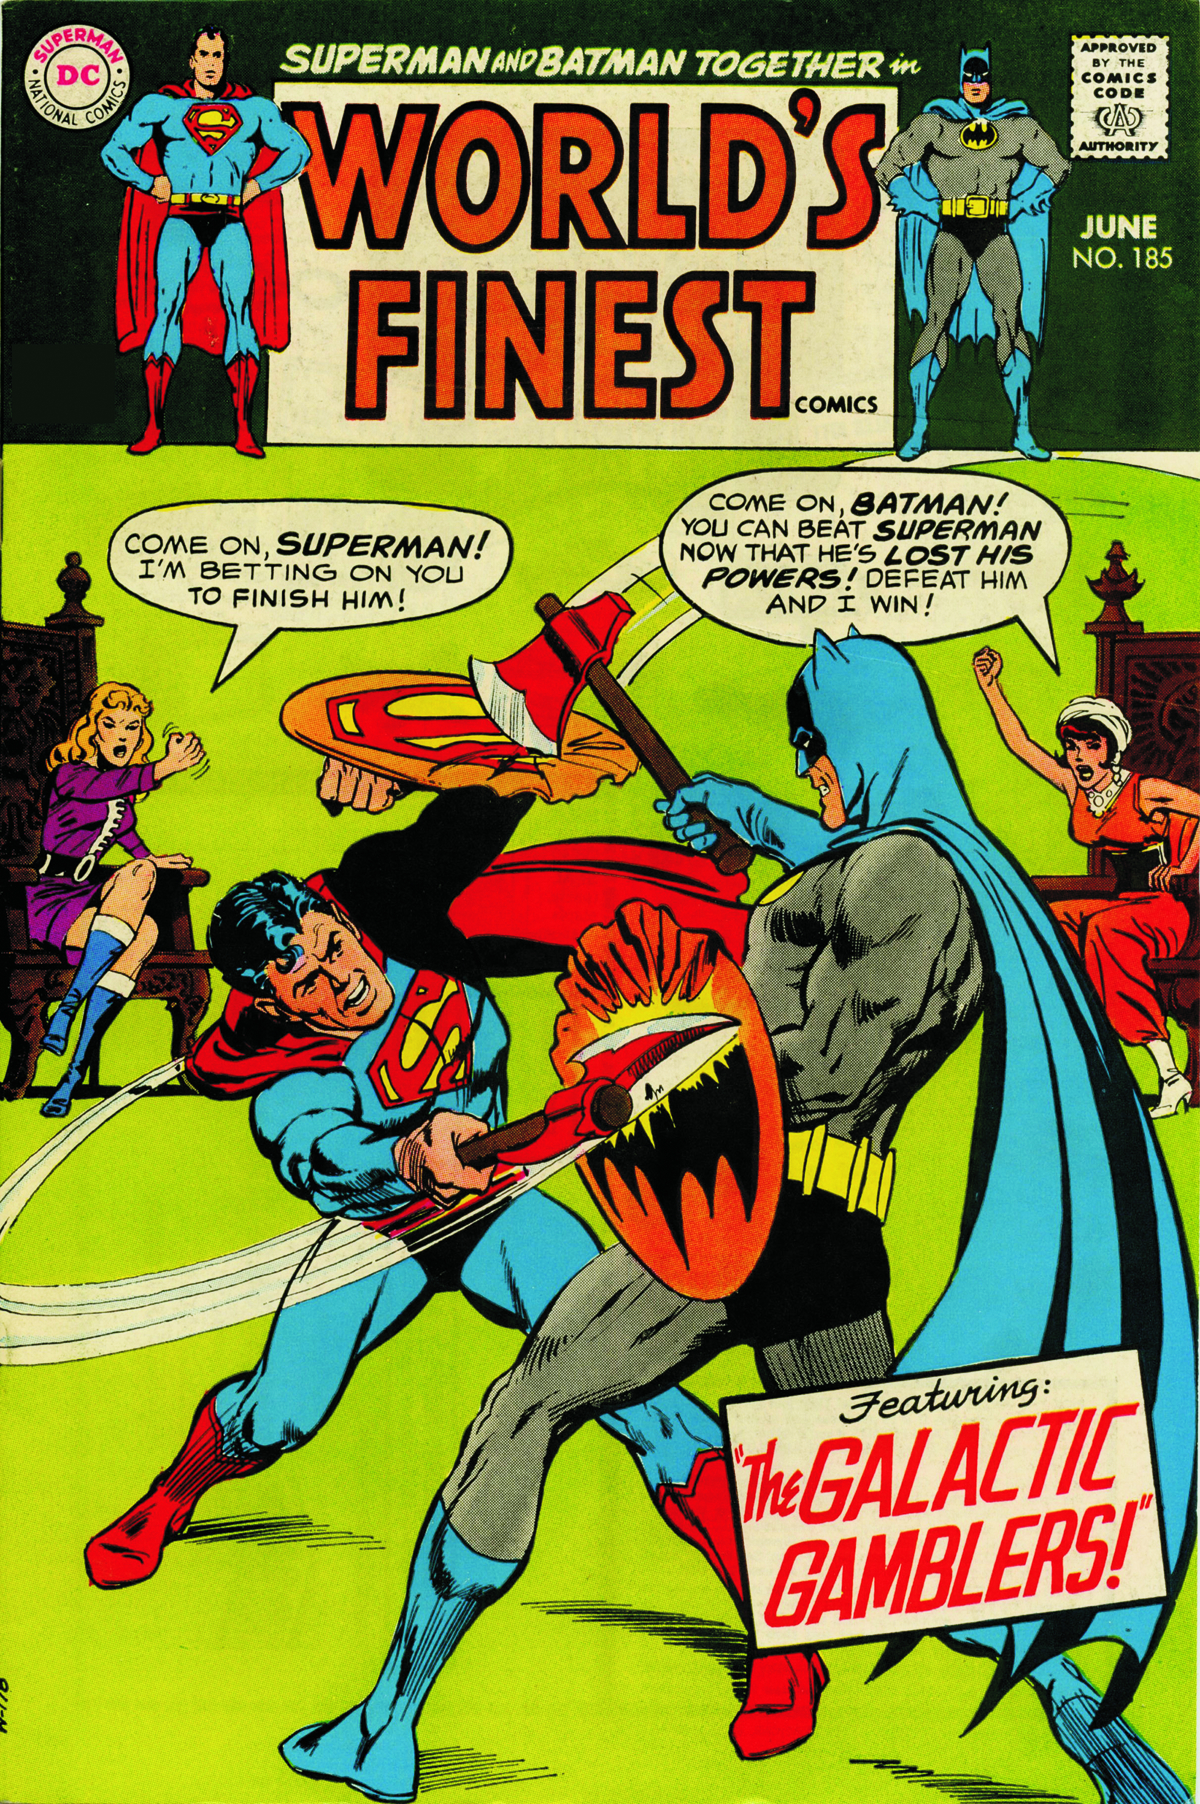 SHOWCASE PRESENTS WORLDS FINEST TP VOL 04